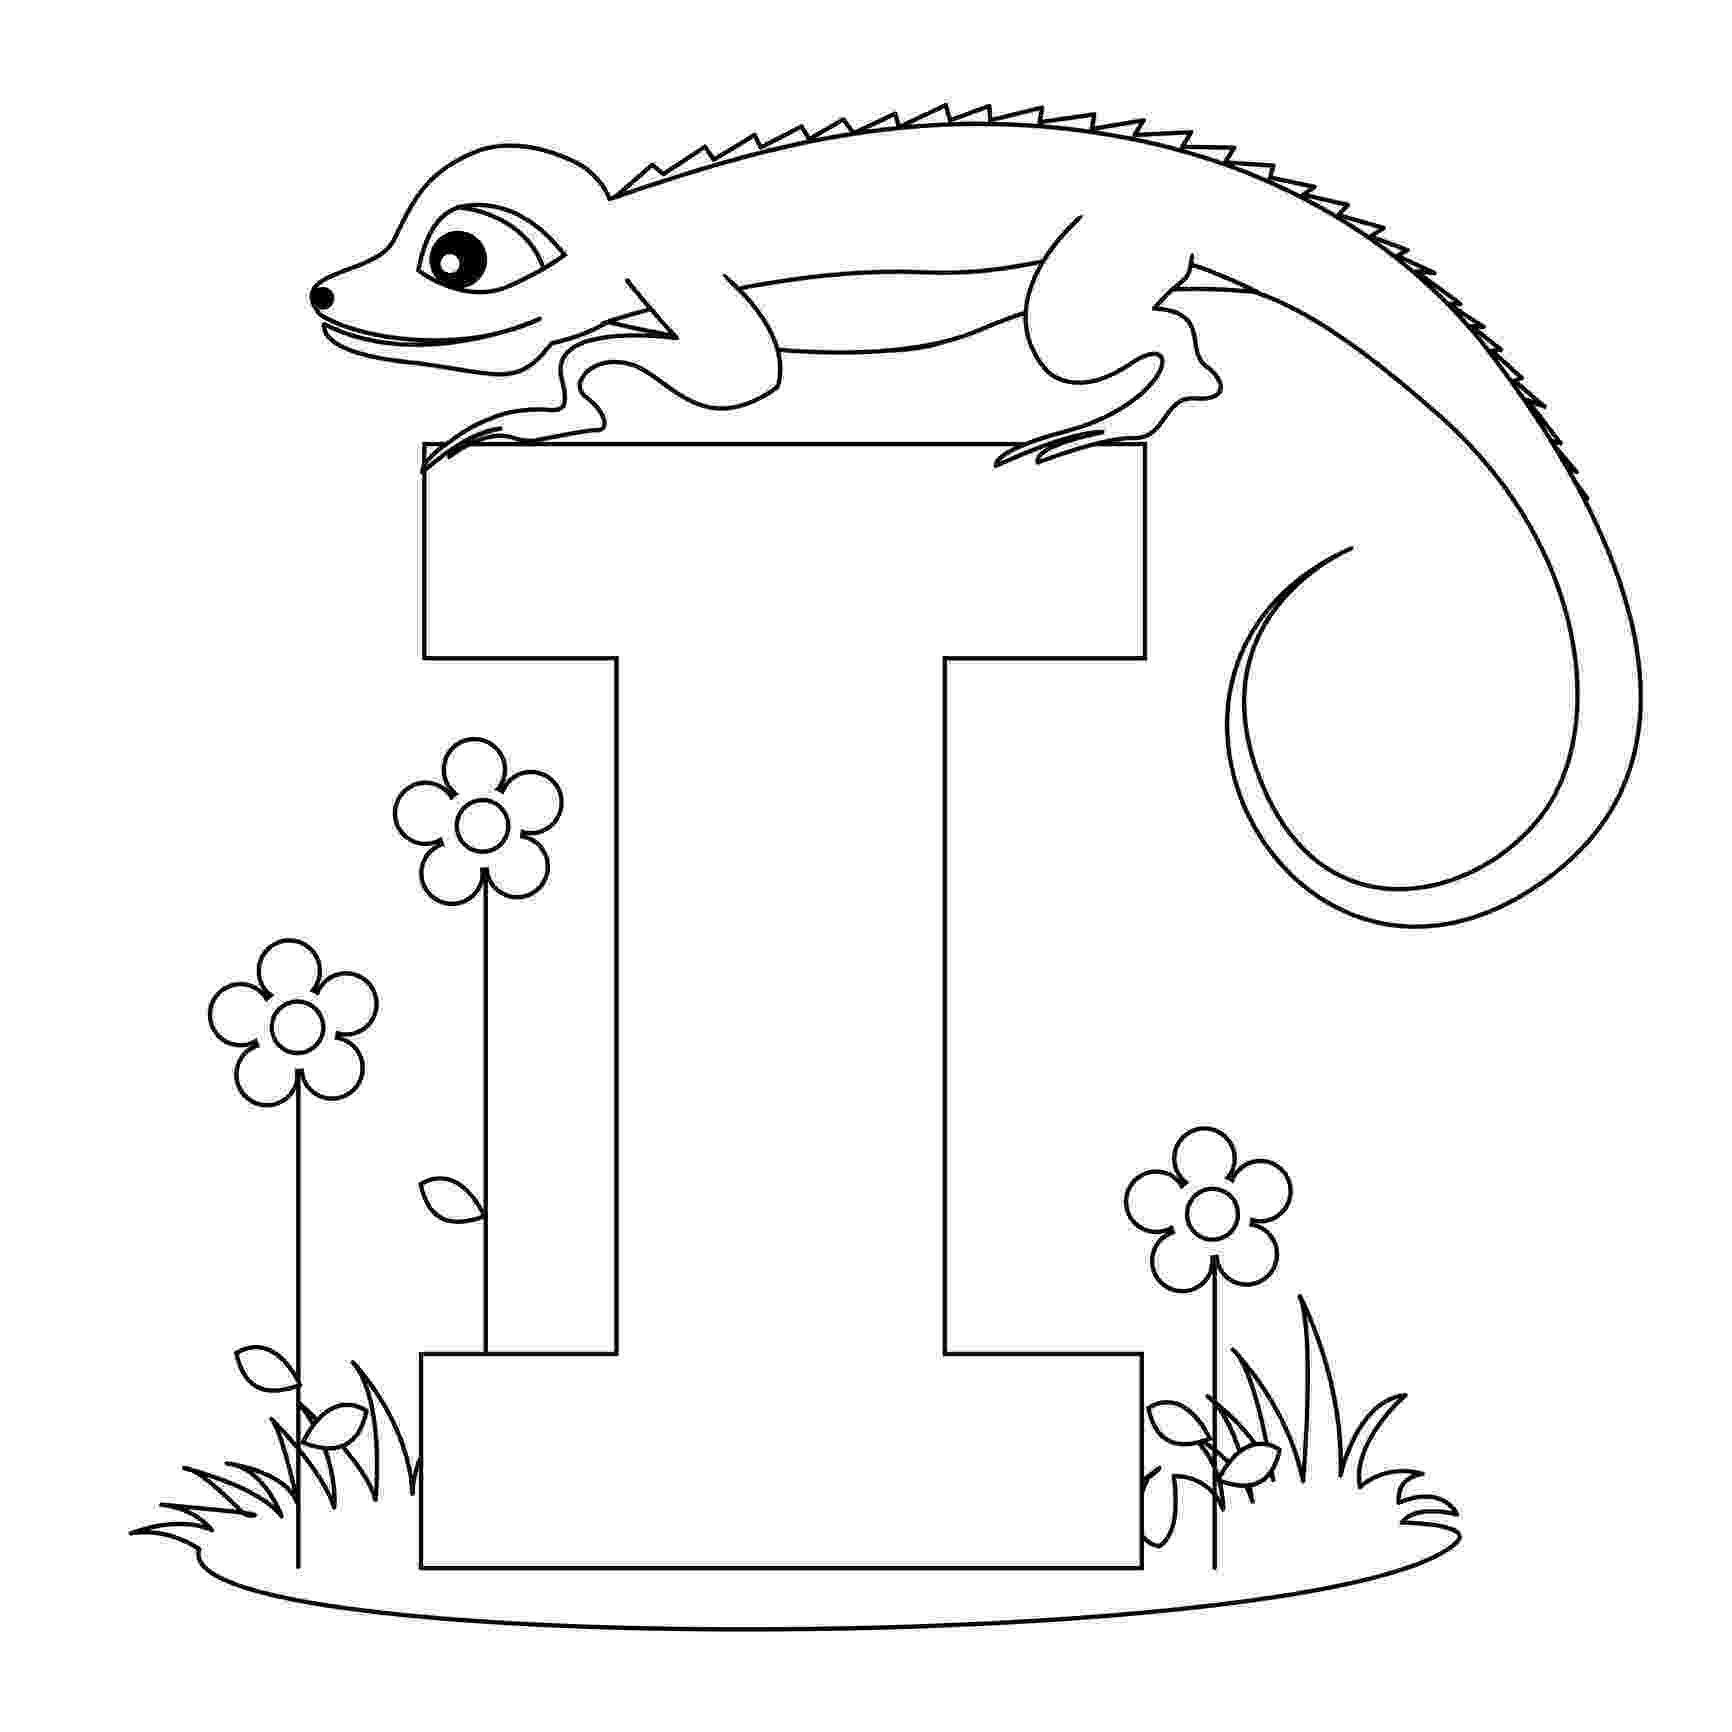 coloring pictures of alphabet letters free printable alphabet coloring pages for kids best alphabet pictures coloring of letters